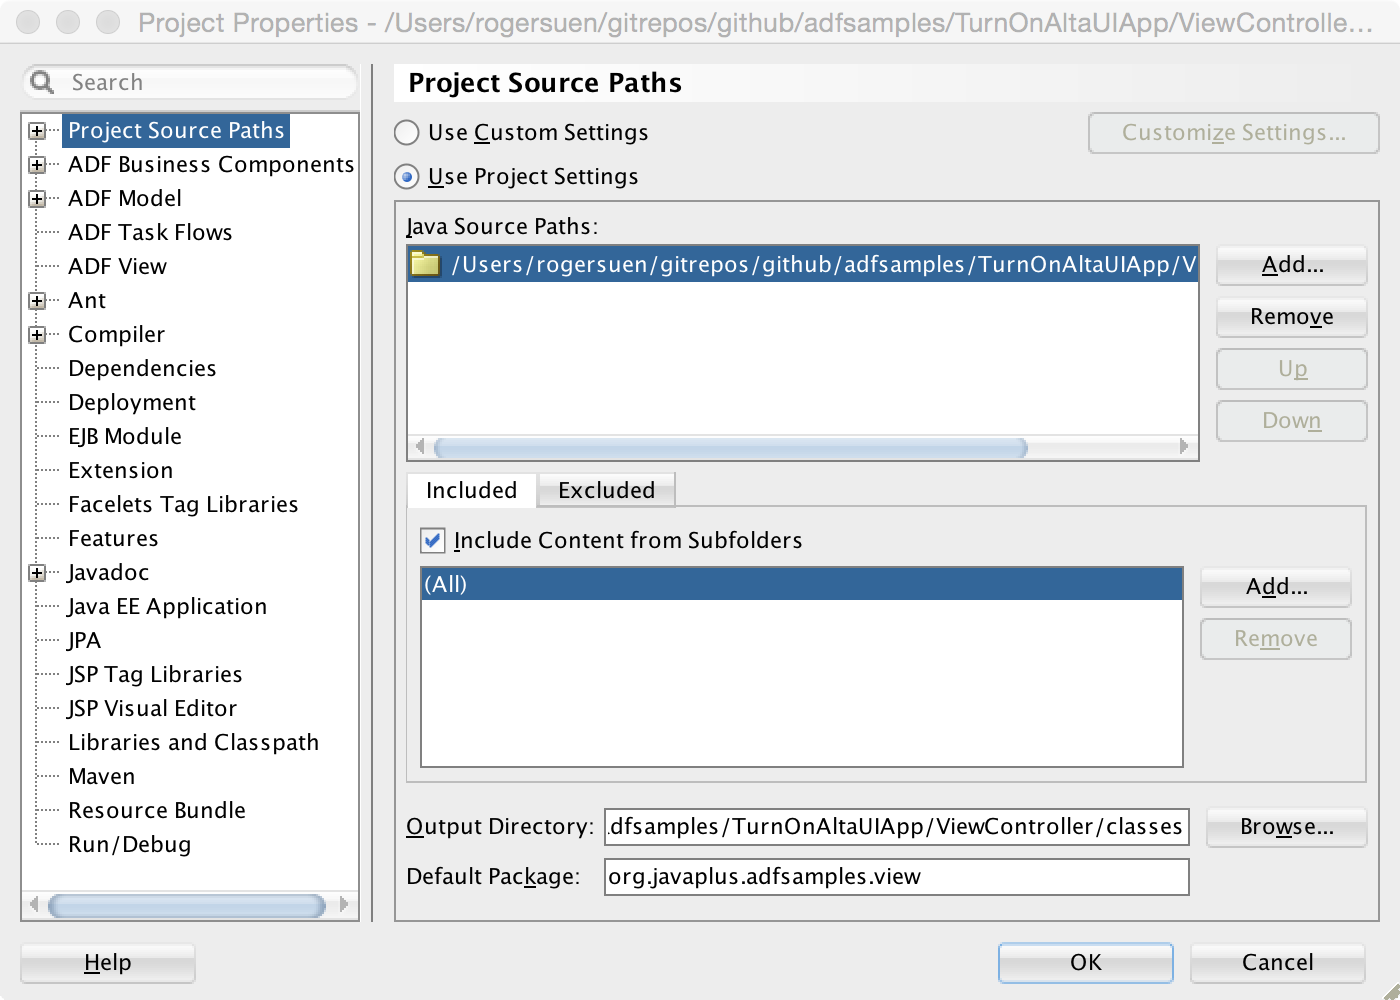 Image: Project Source Paths